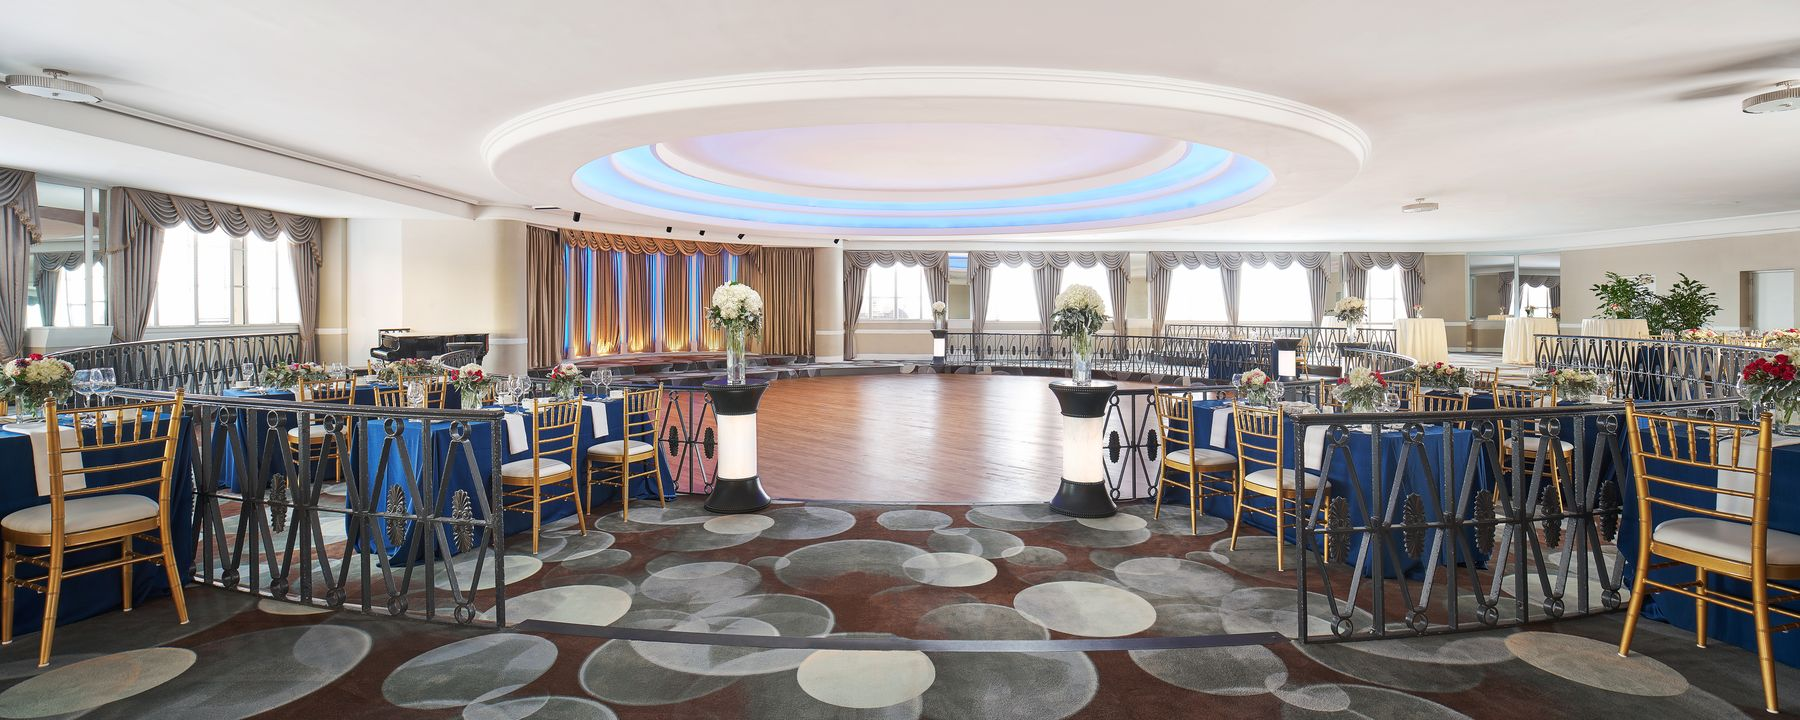 The Skyway Ballroom at The Peabody Memphis - Events